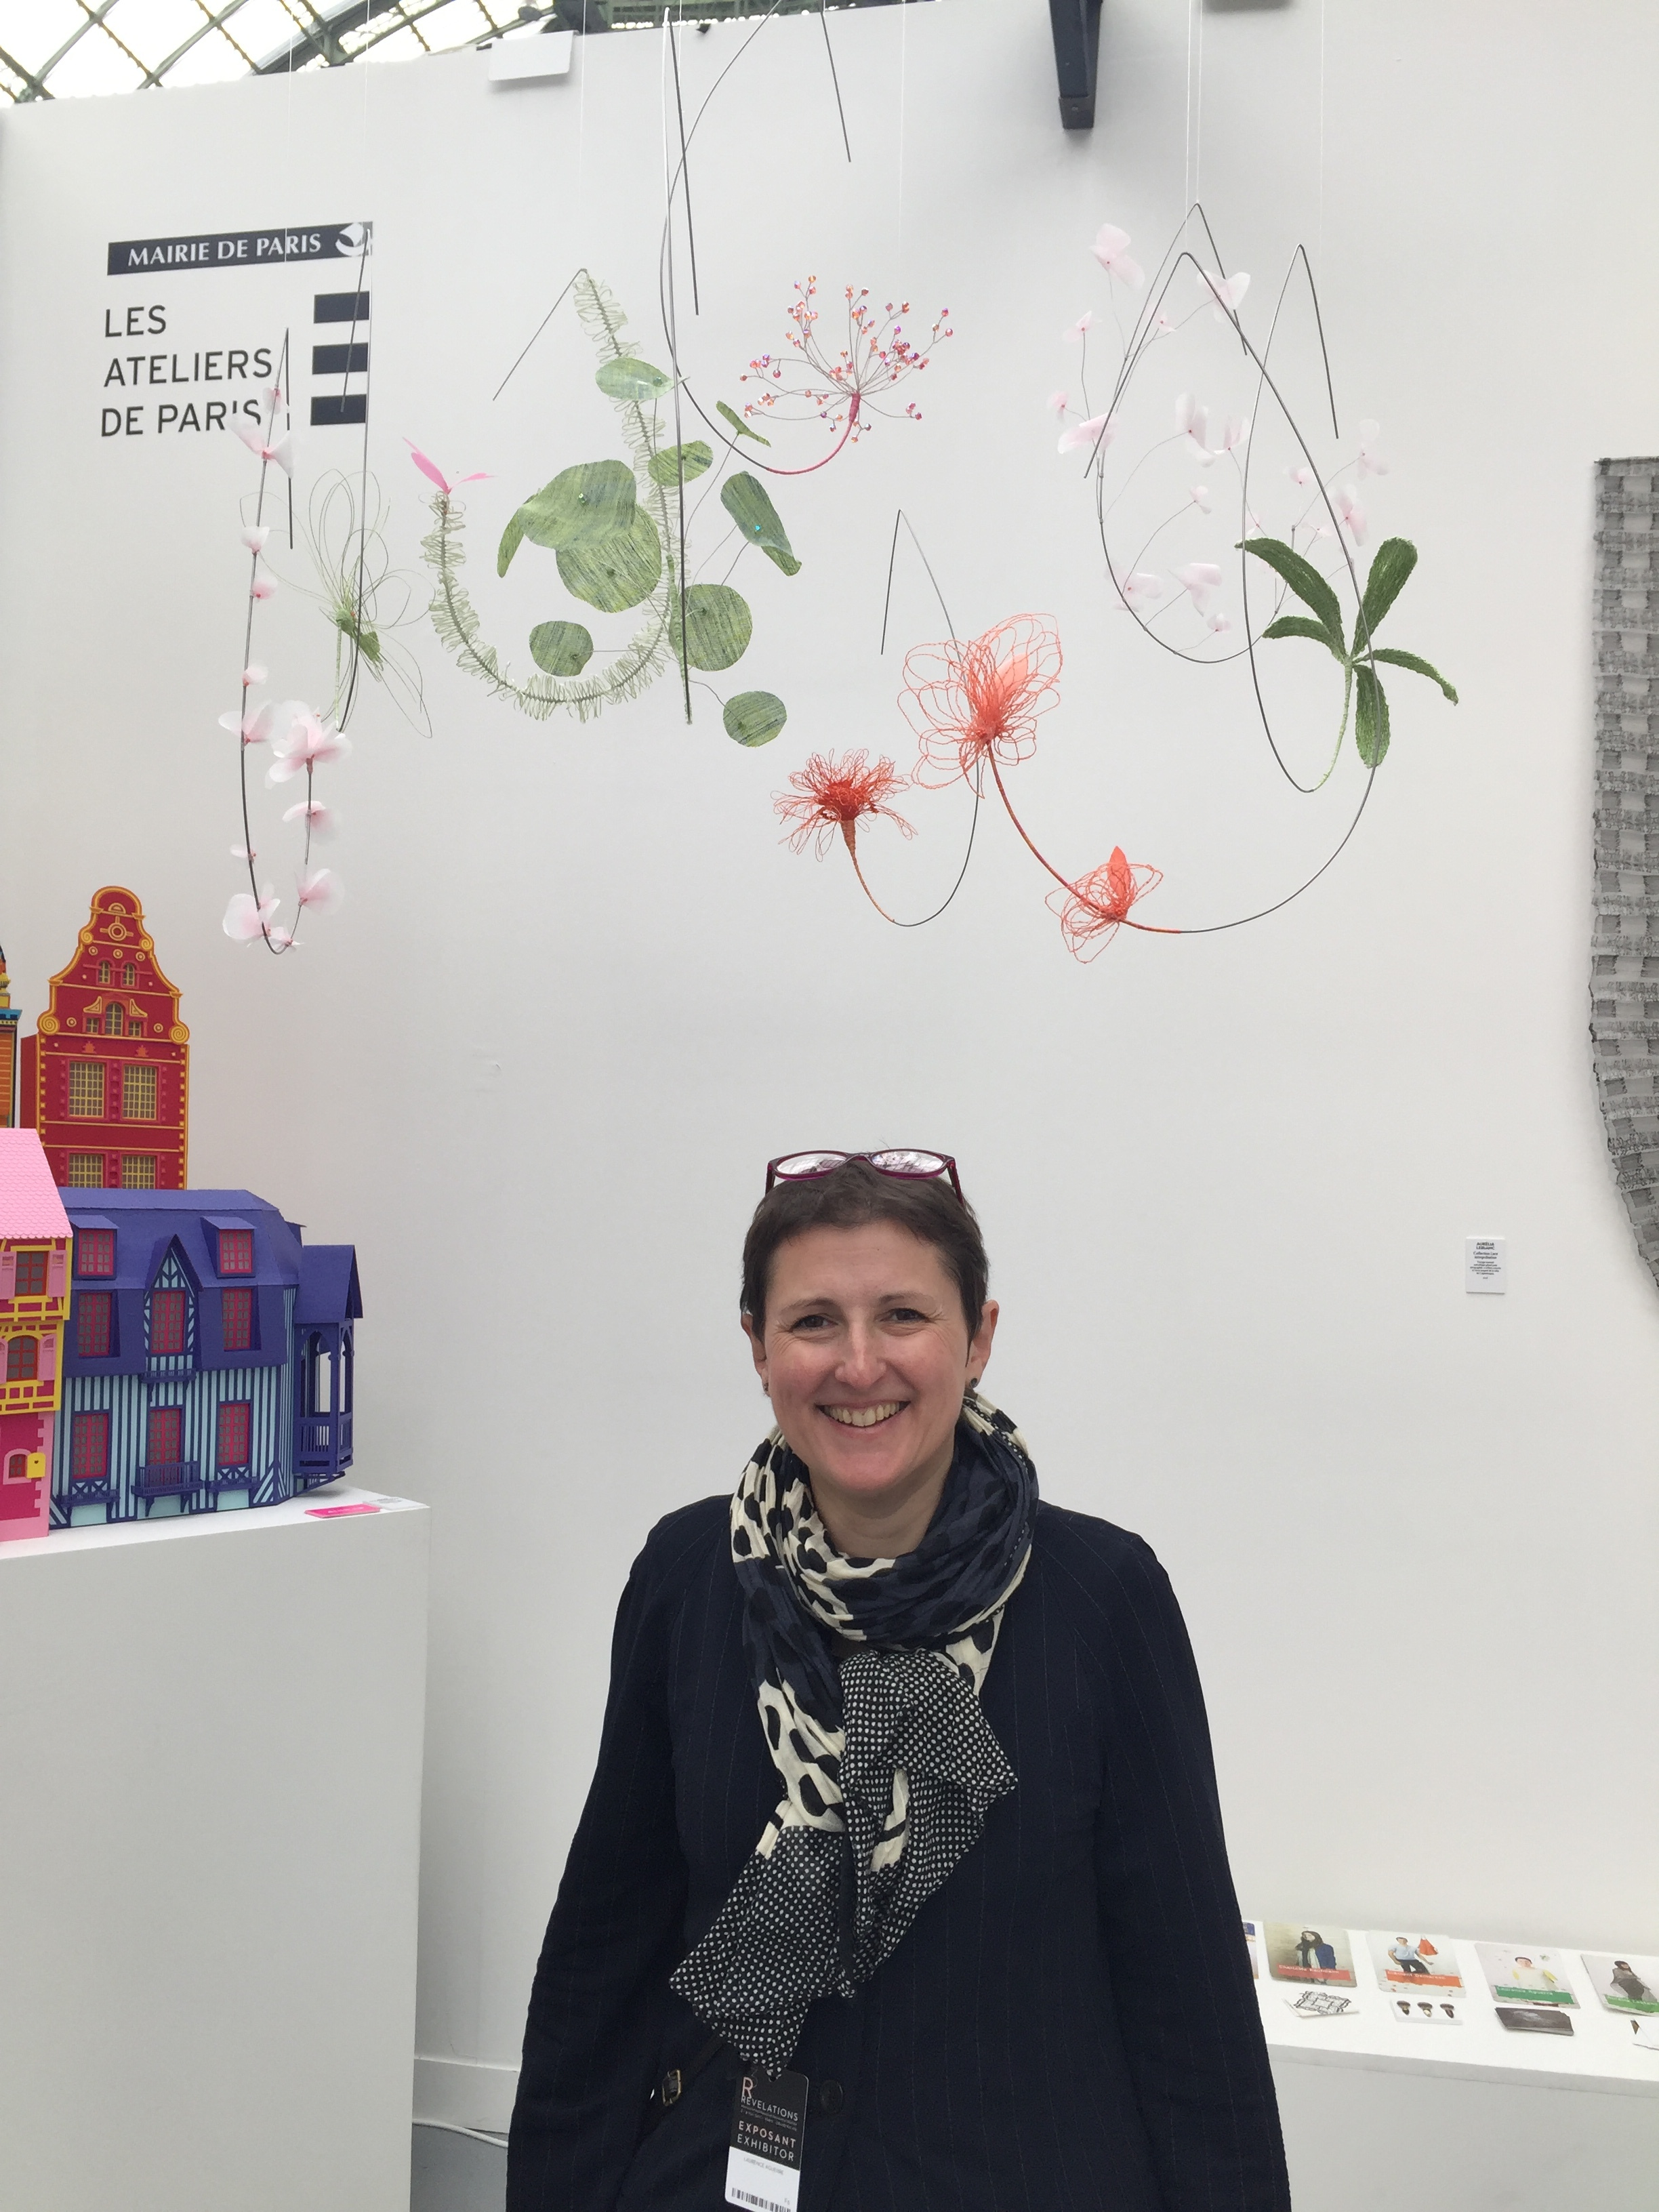 Laurence at the Ateliers de Paris booth at the Grand Palais biennial exhibition or French craftsmanship with her floral mobile